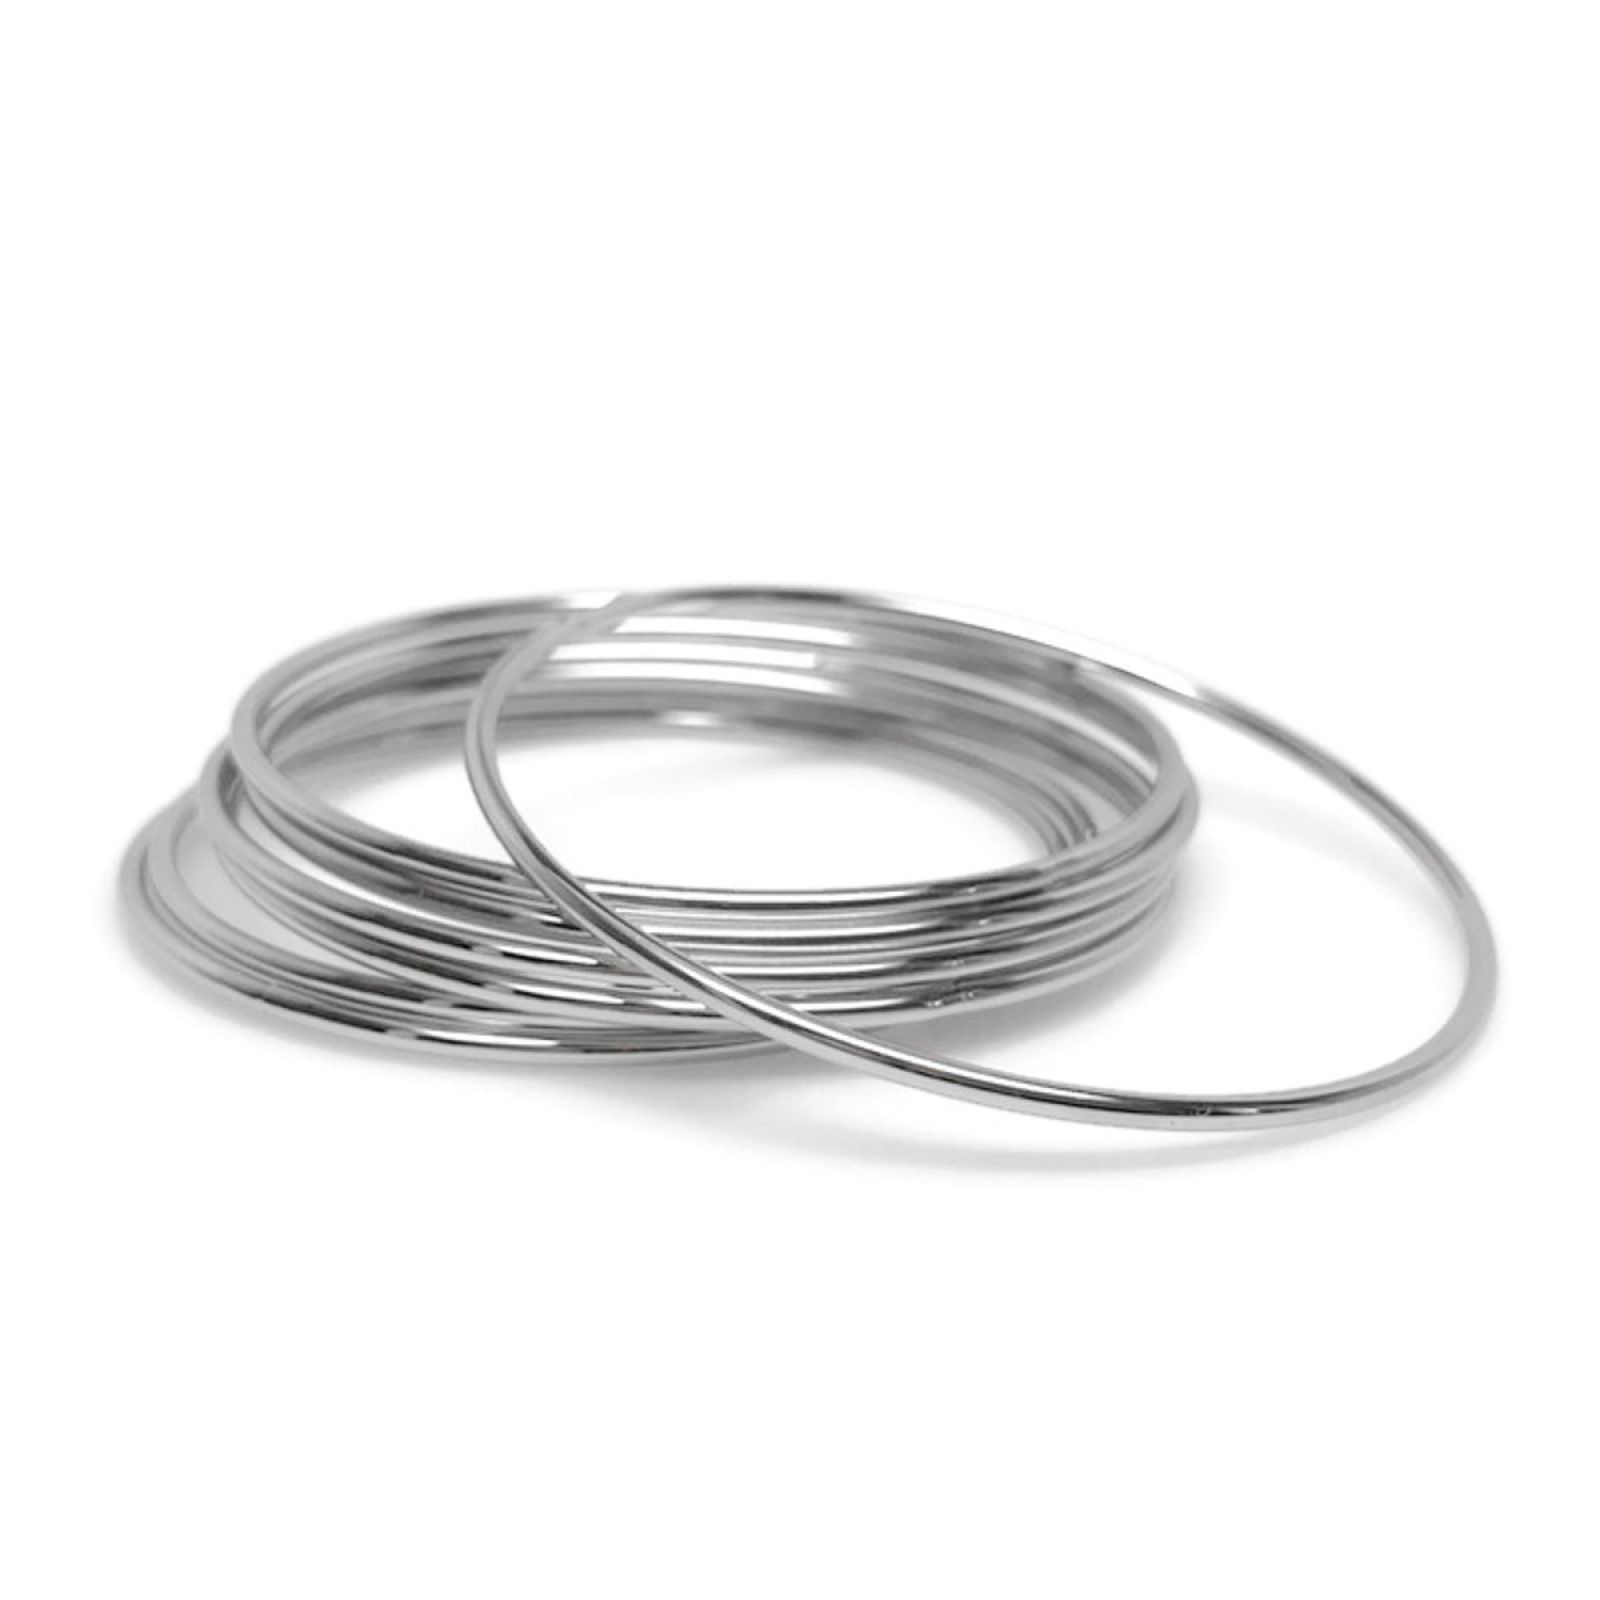 Jewelry Gift Idea for Mom Stackable Closed Thin Silver Bangle Bracelets 9415679e8a